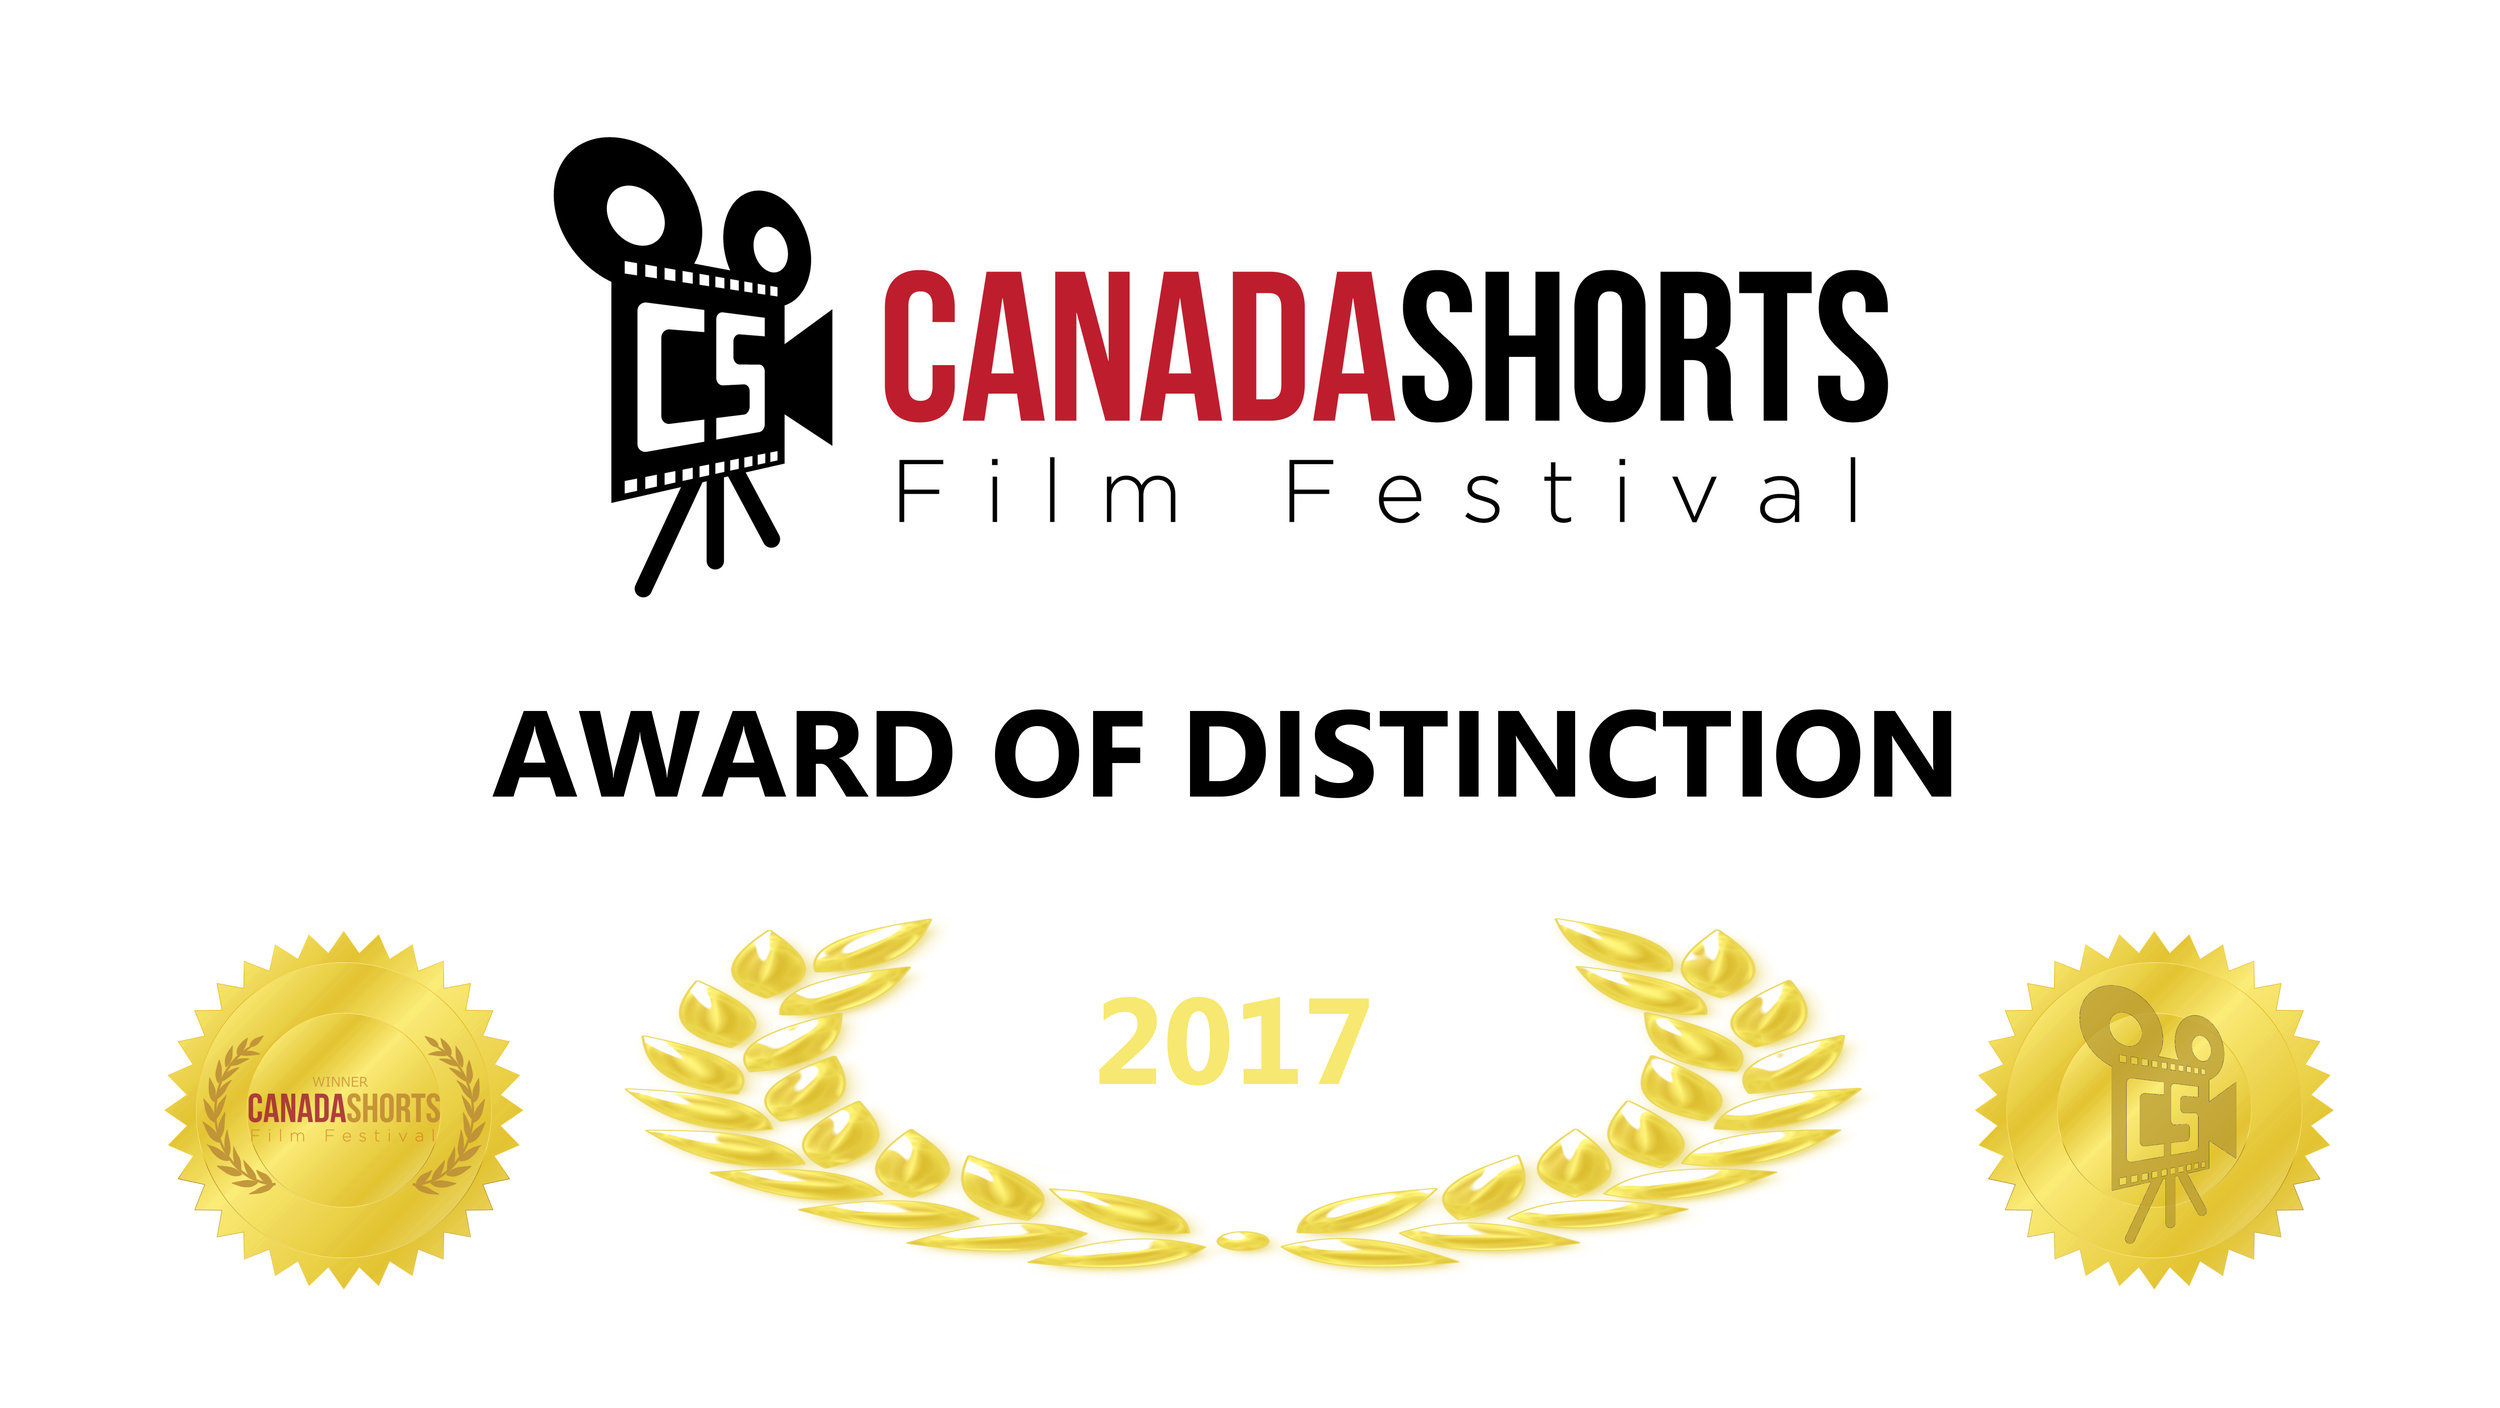 Canada Shorts award of distinction certificate.jpg